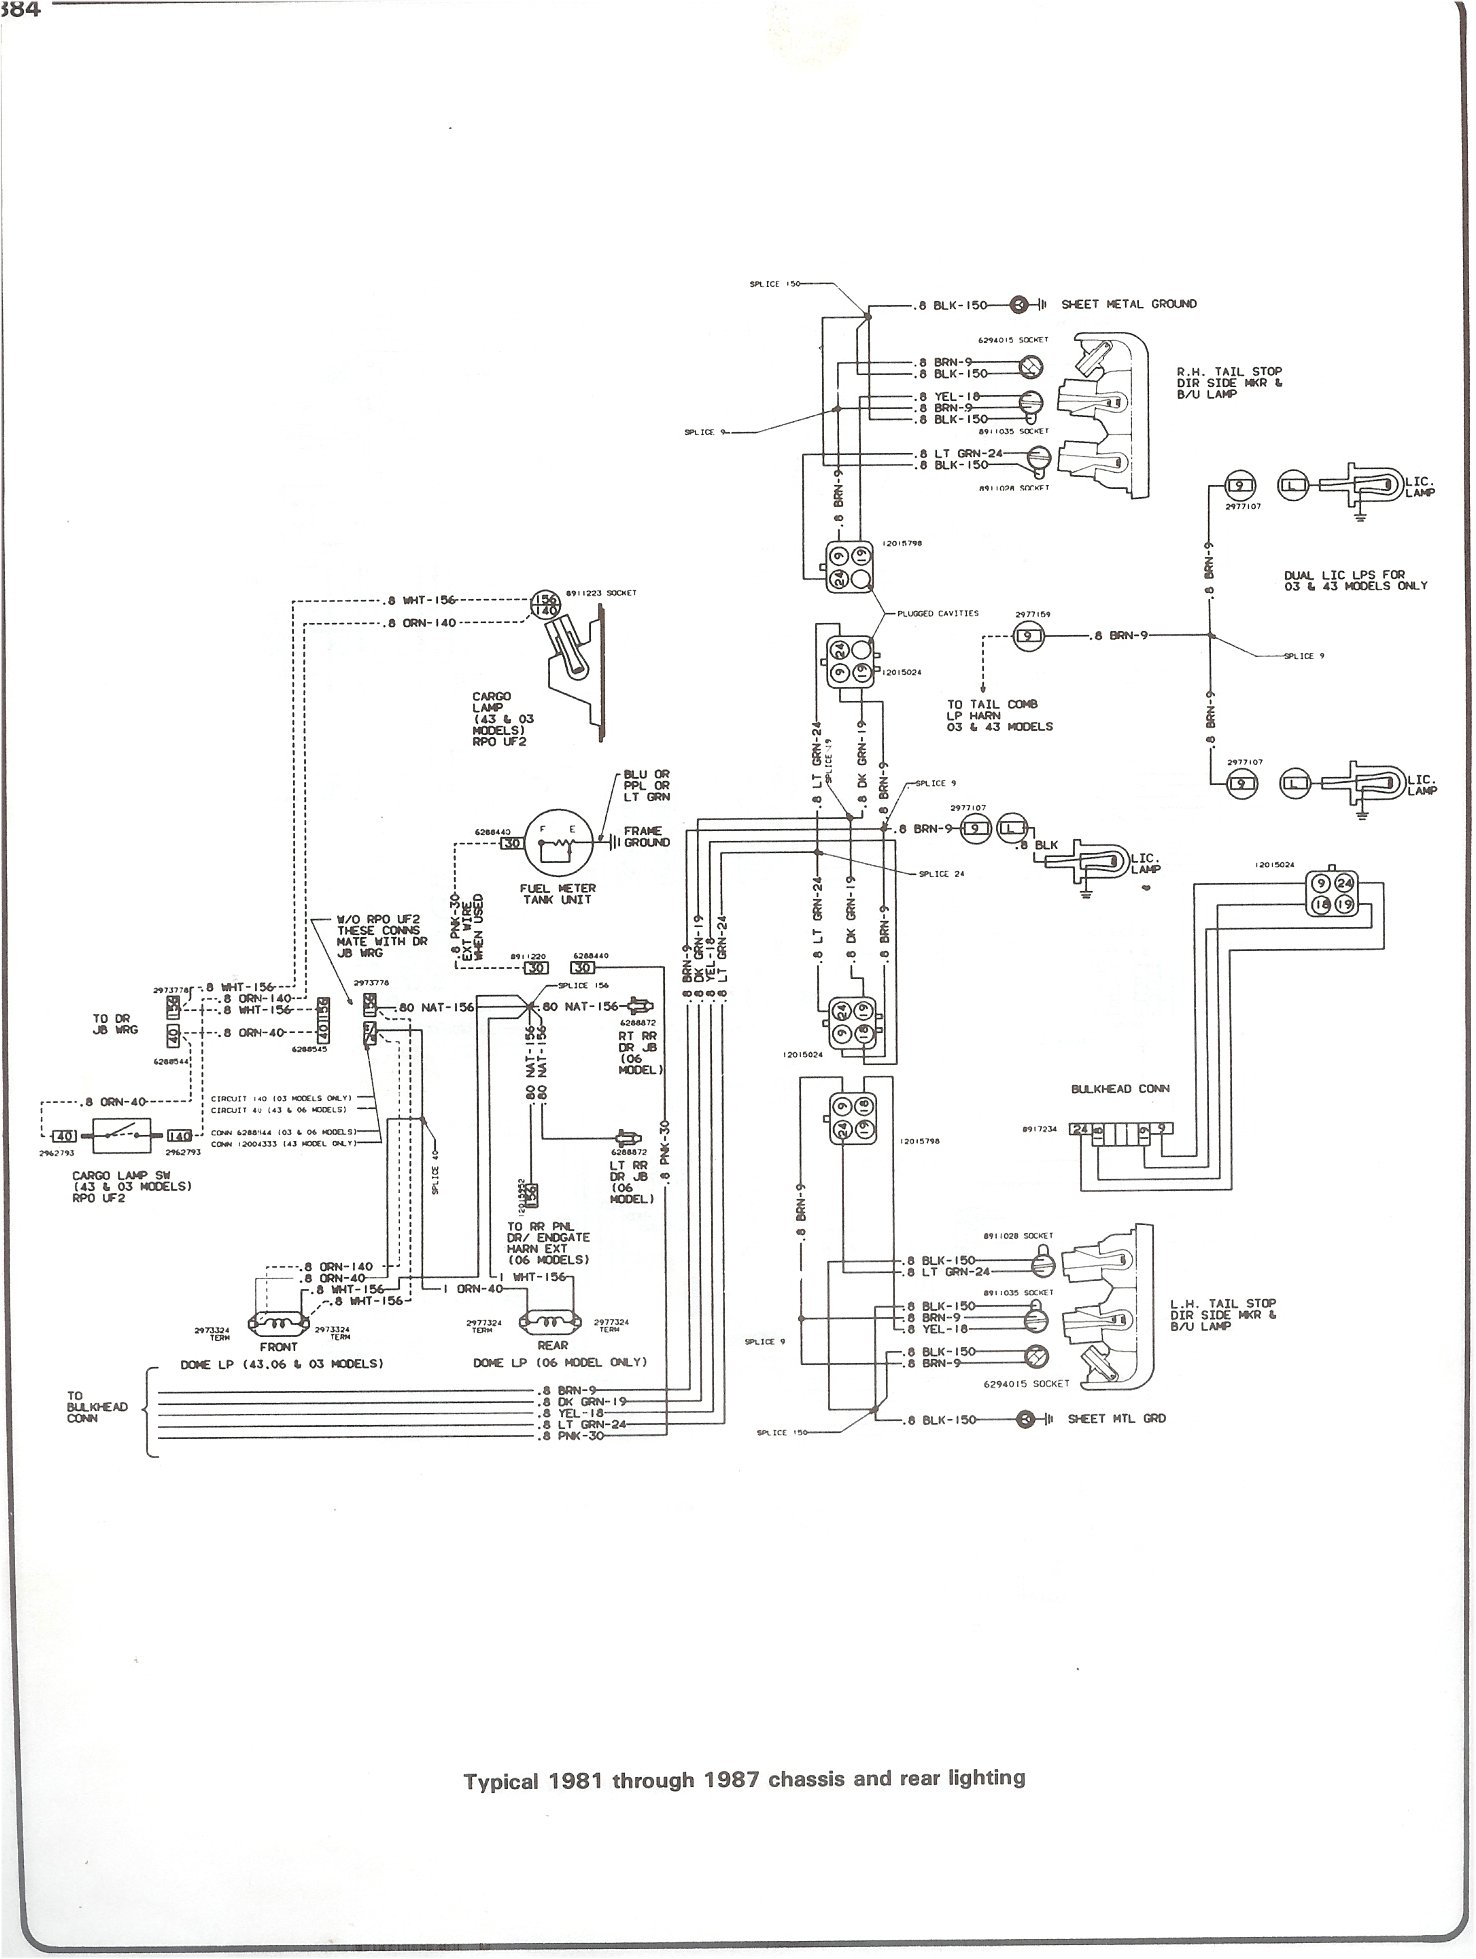 81 87_chass_rr_light complete 73 87 wiring diagrams 73-87 Chevy Wiring Diagrams Site at reclaimingppi.co